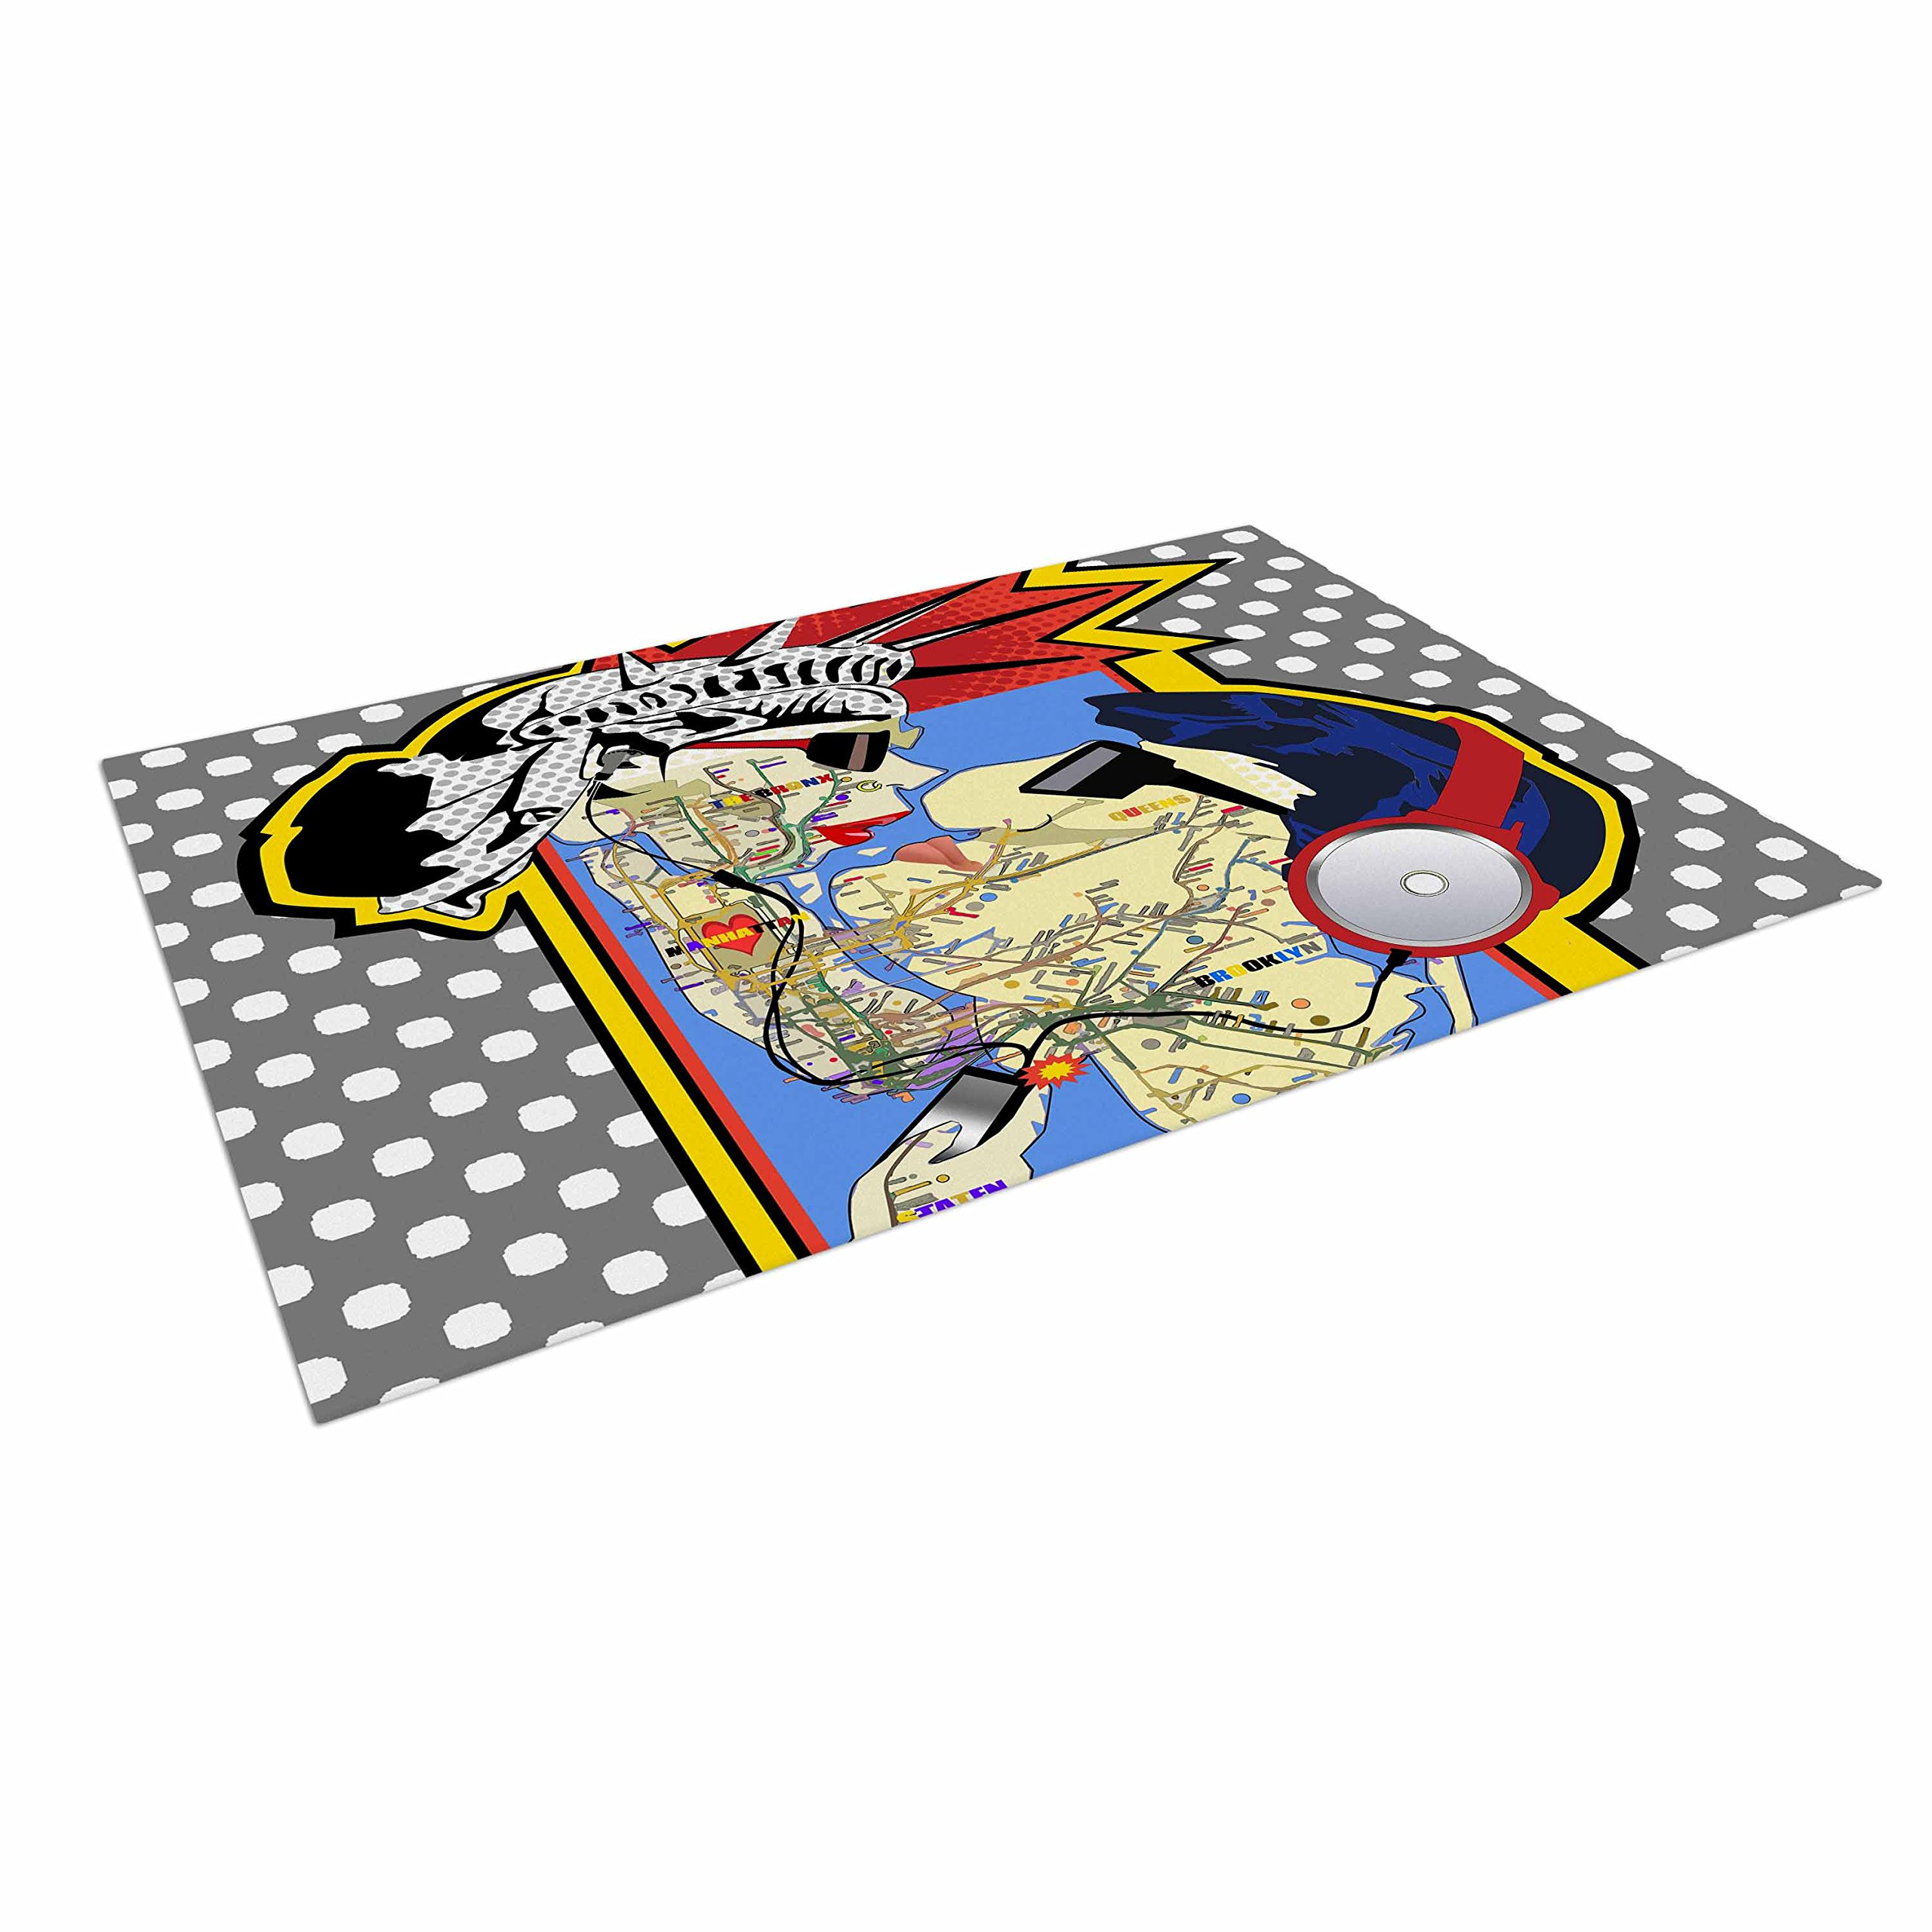 KESS InHouse Lazar Milanovic ''You Got The Big Apple Boy! '' Red Yellow Indoor/Outdoor Floor Mat, 4' x 5'